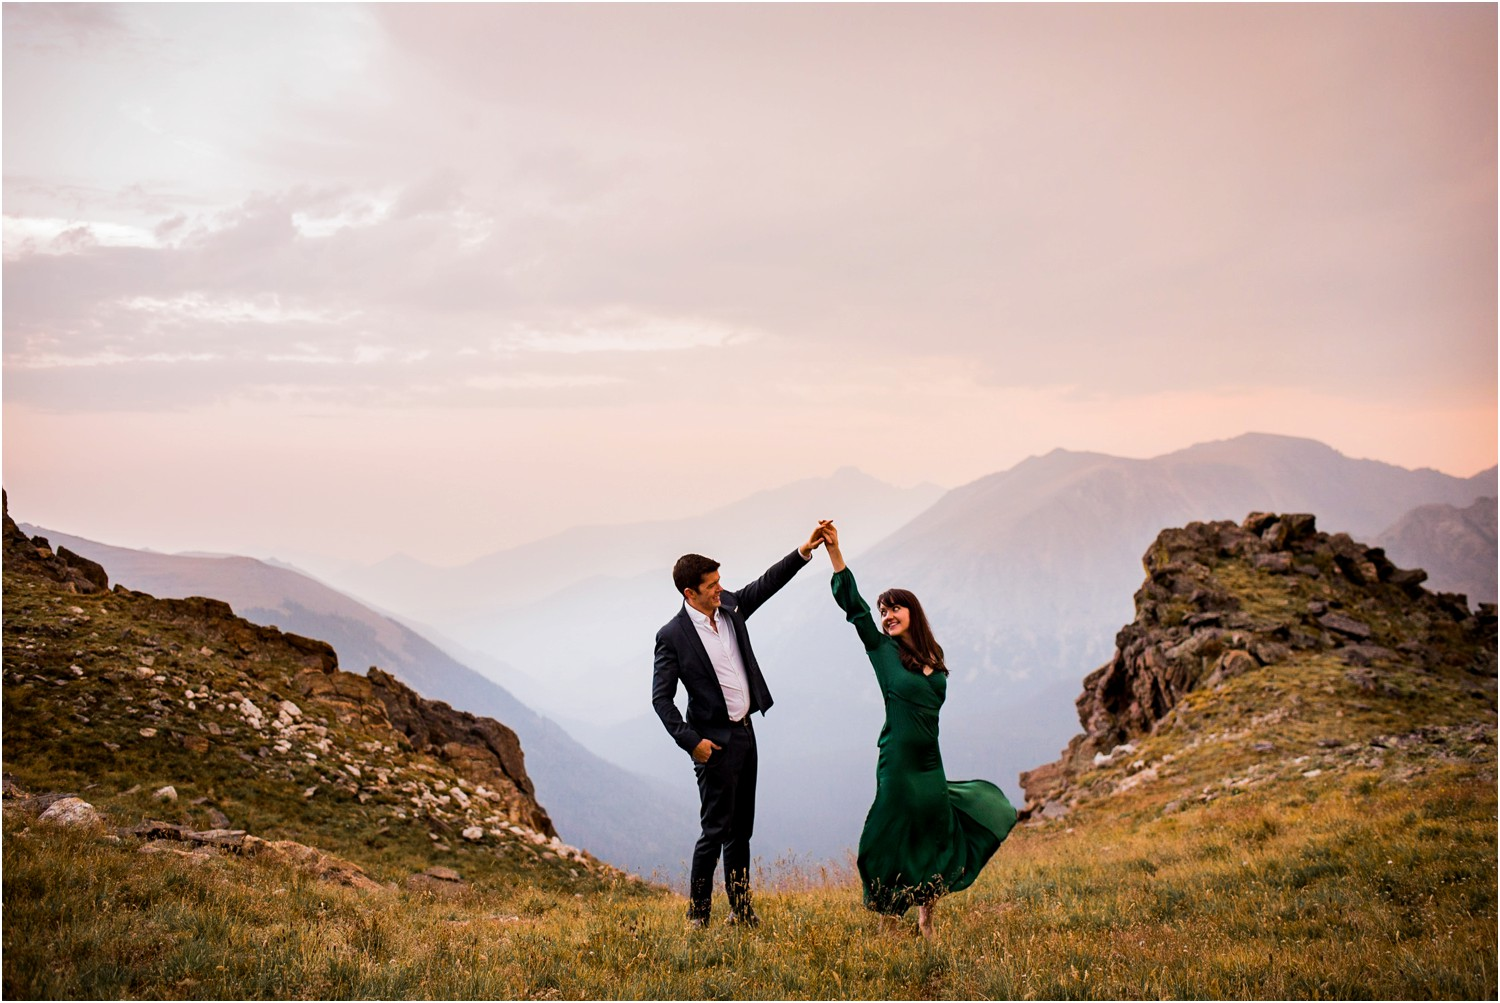 Rocky-mountain-national-Park-engagement-photography_0046.jpg